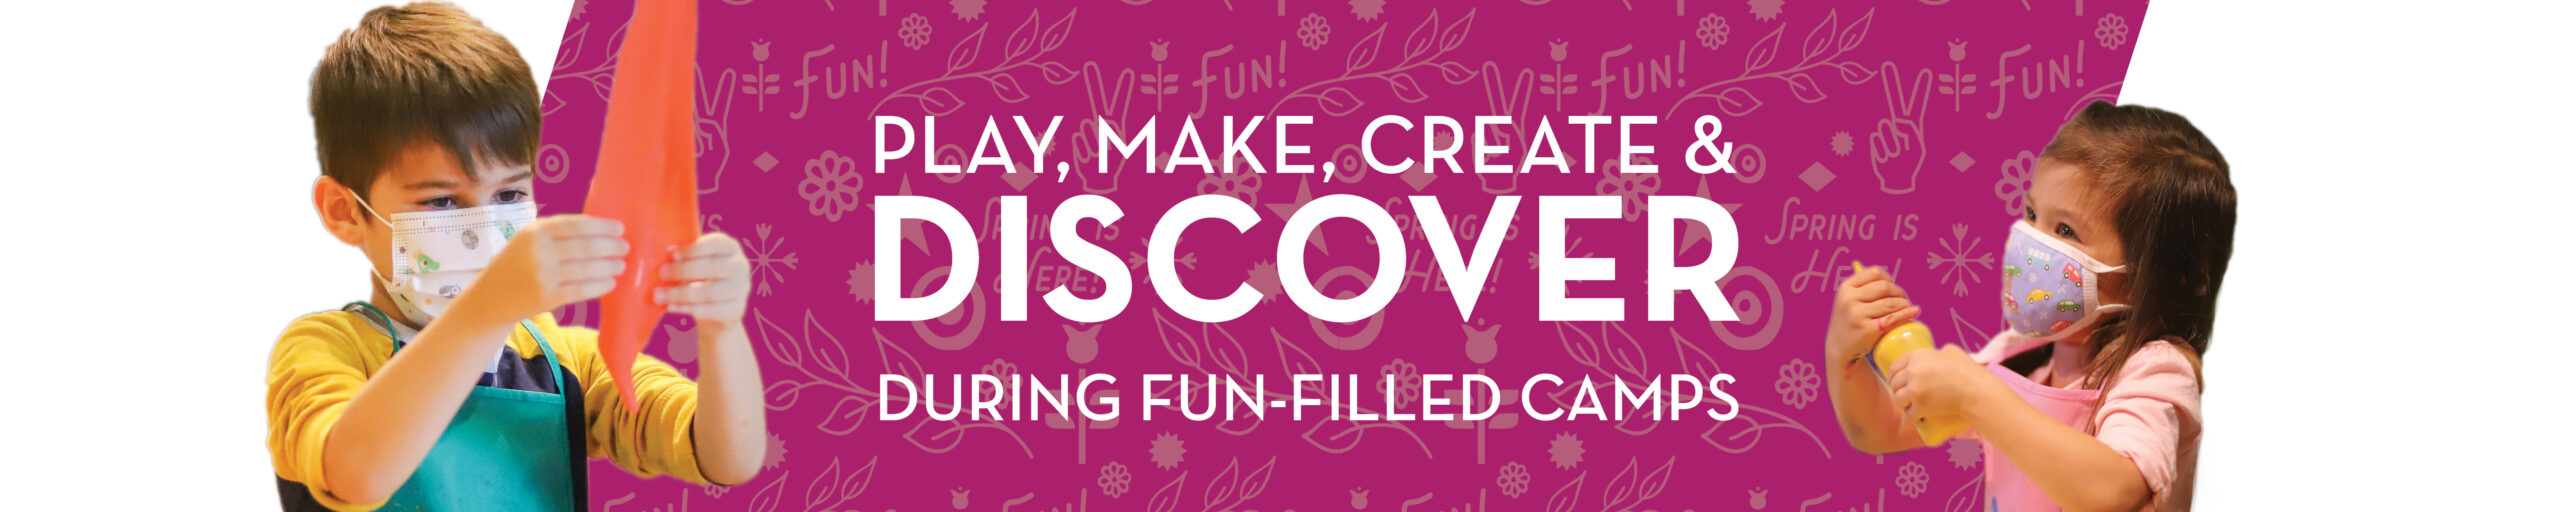 Play, Make, Create and Discover during fun-filled camps